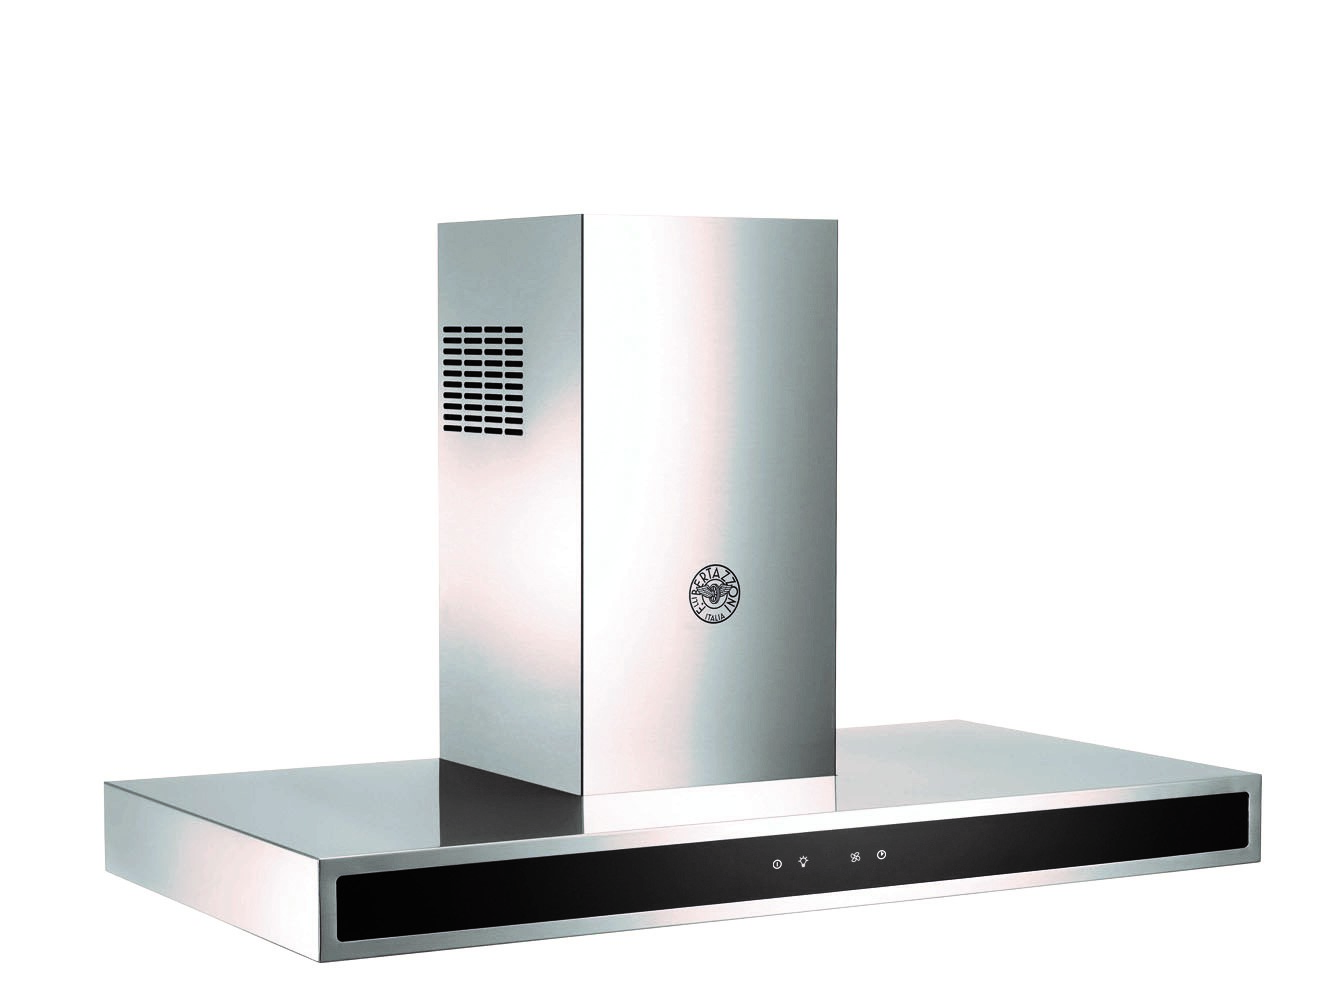 Bertazzoni Range hood KG30X in Stainless Steel color showcased by Corbeil Electro Store